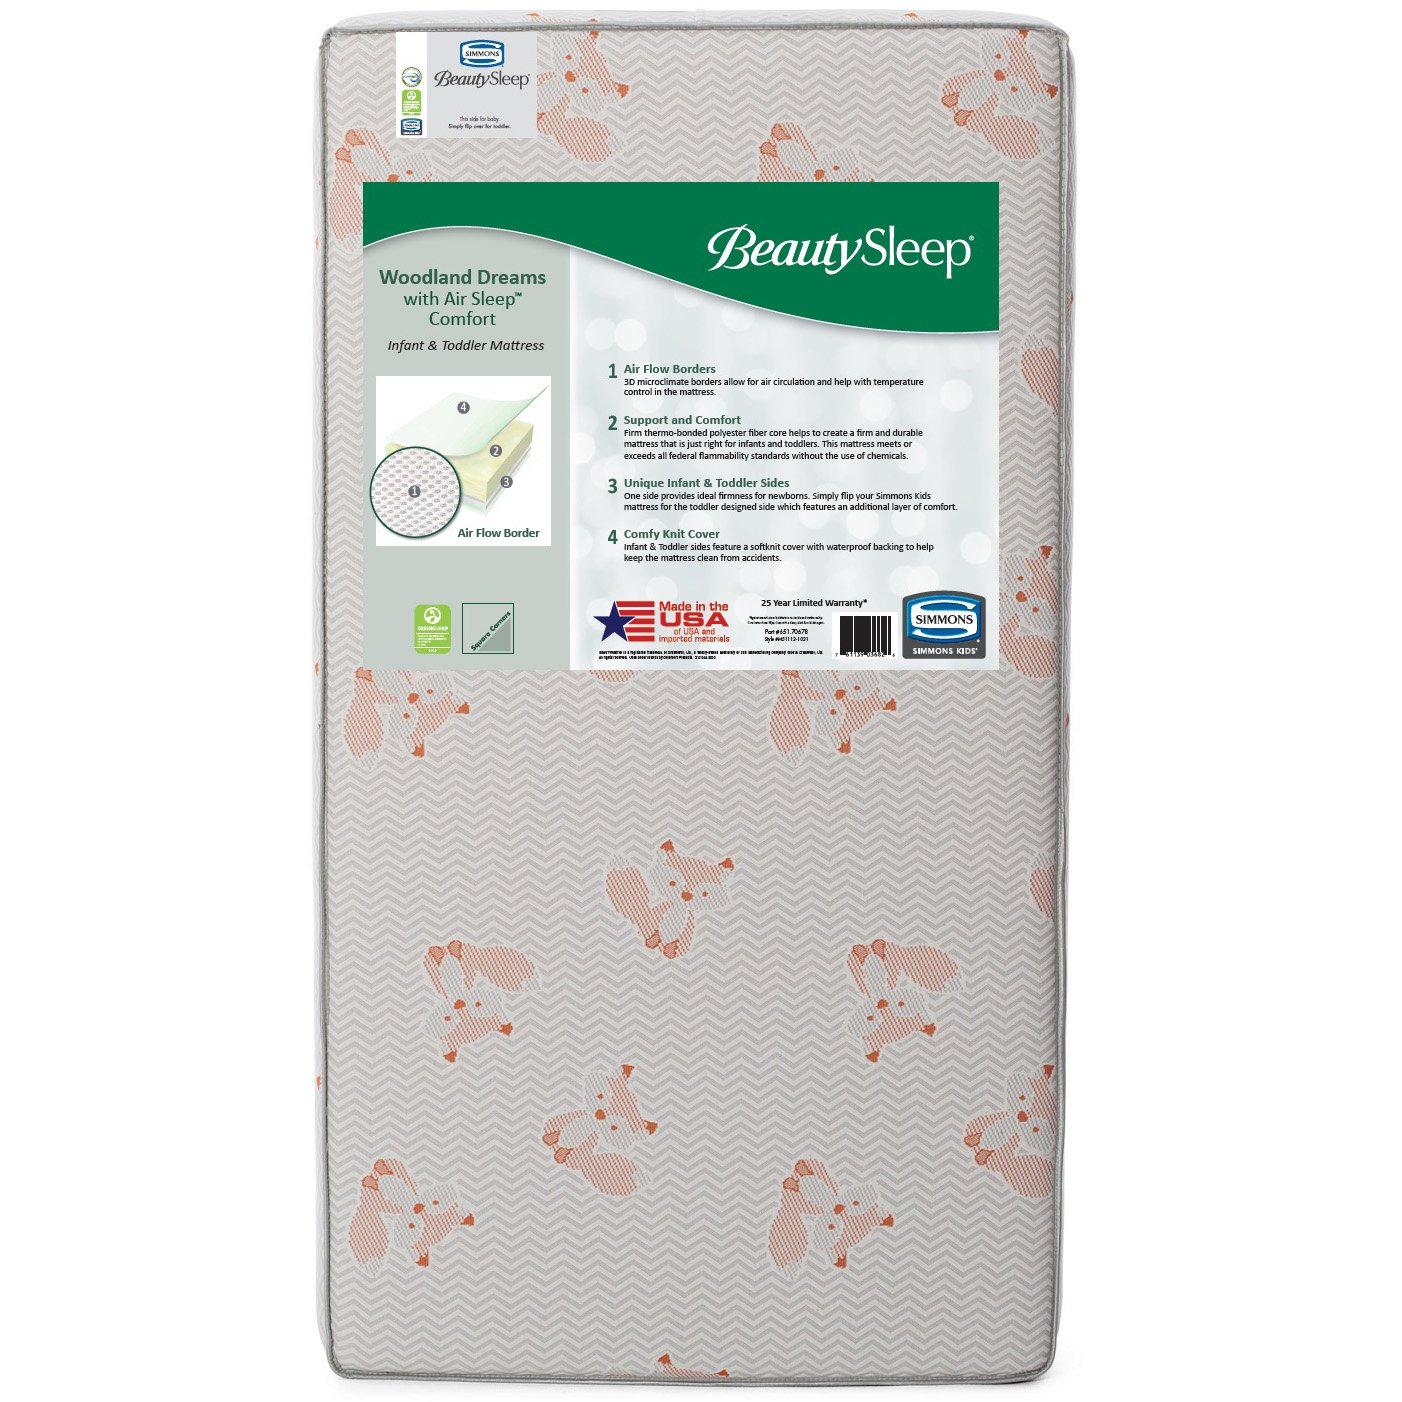 BeautySleep Woodland Dreams with Air Sleep Comfort Fiber Core Crib and Toddler Mattress Natural//Non-Toxic Waterproof| Lightweight Fox GREENGUARD Gold Certified